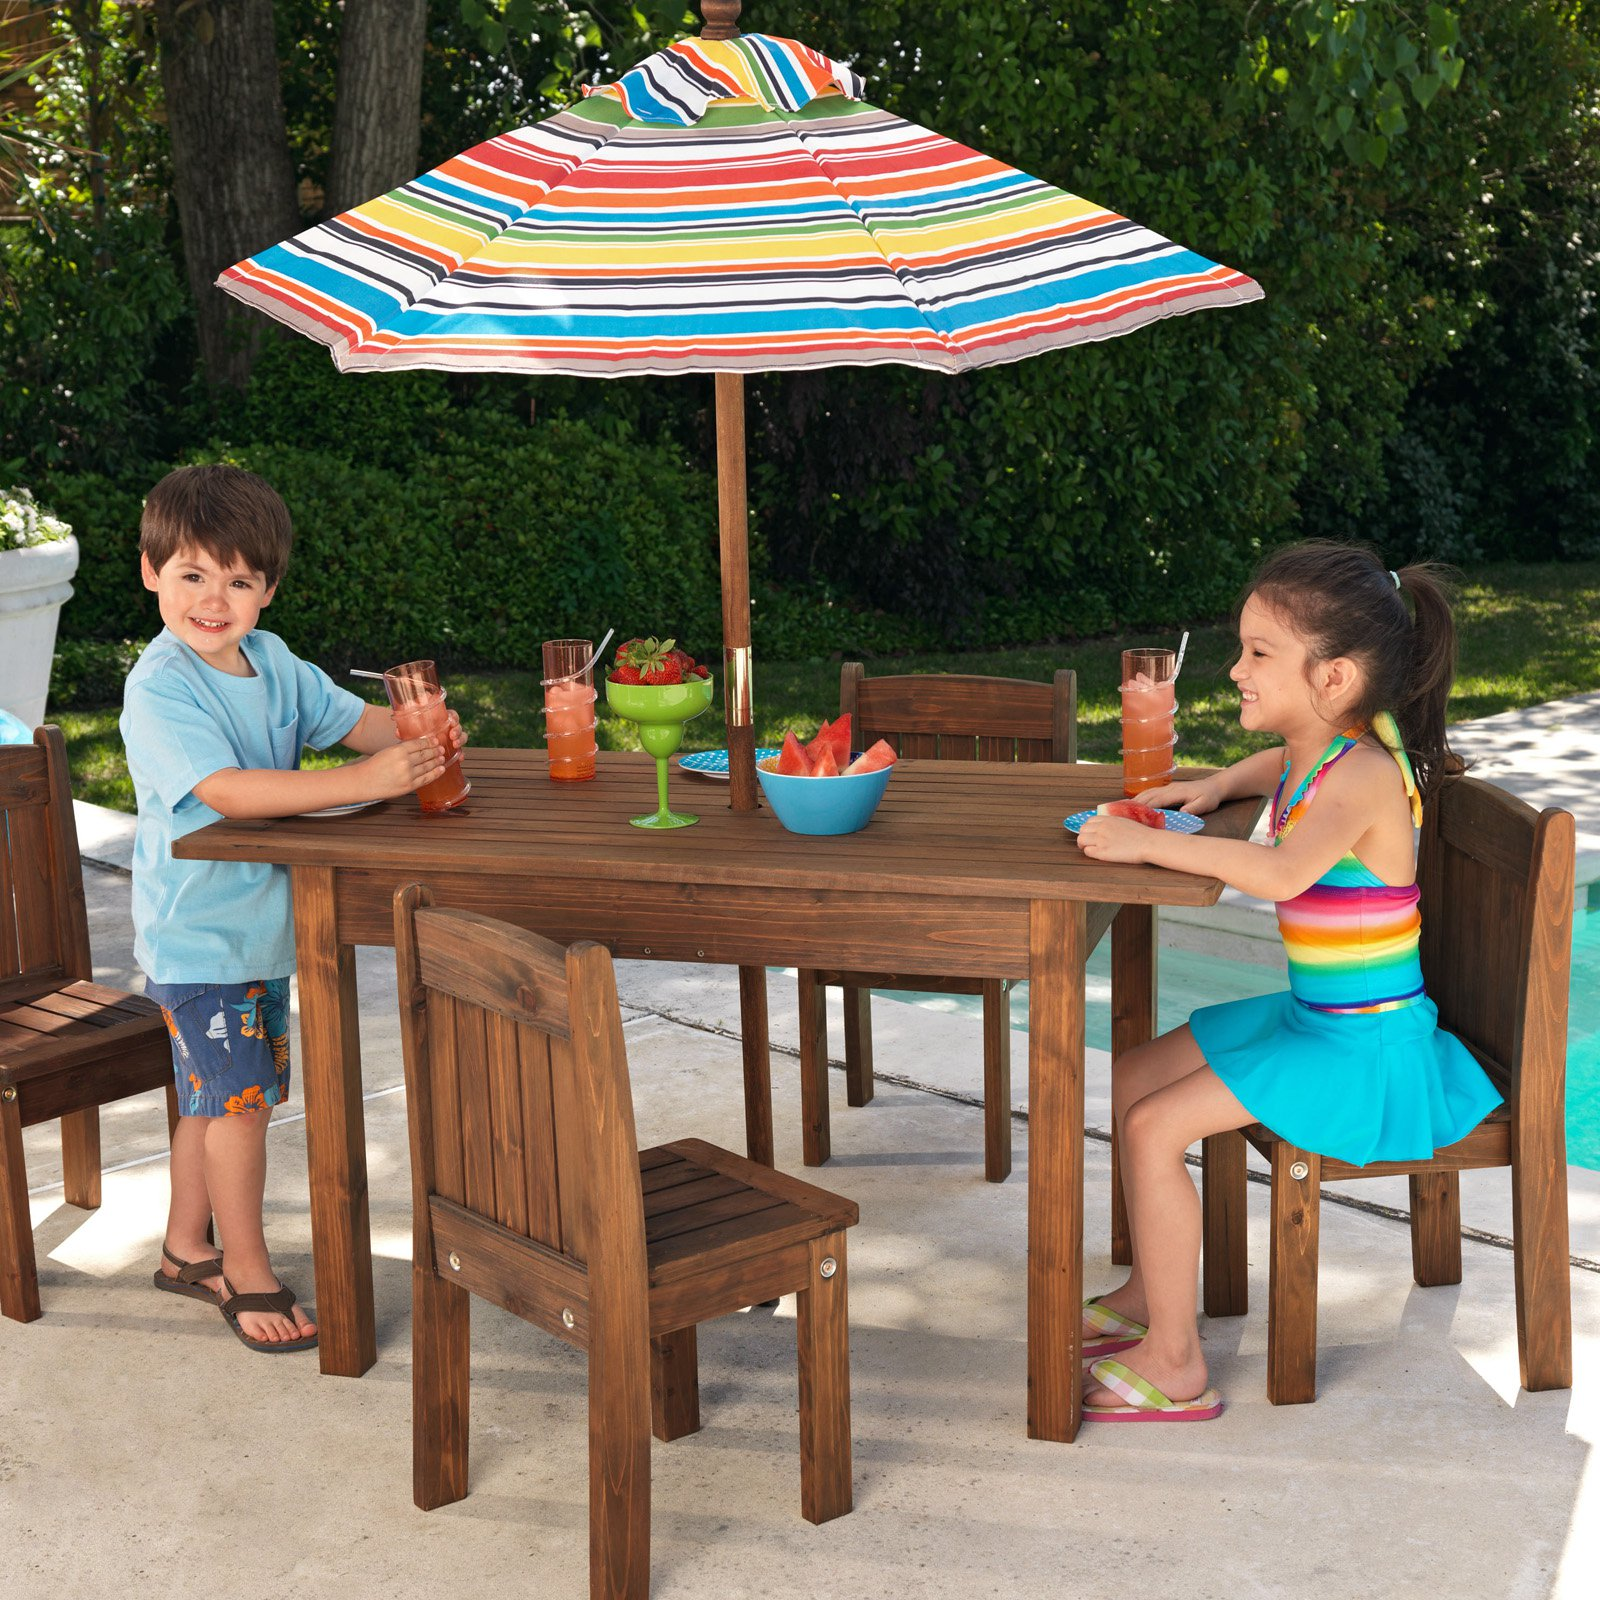 Childrens Outdoor Furniture With Umbrella Simplylushliving Part 6